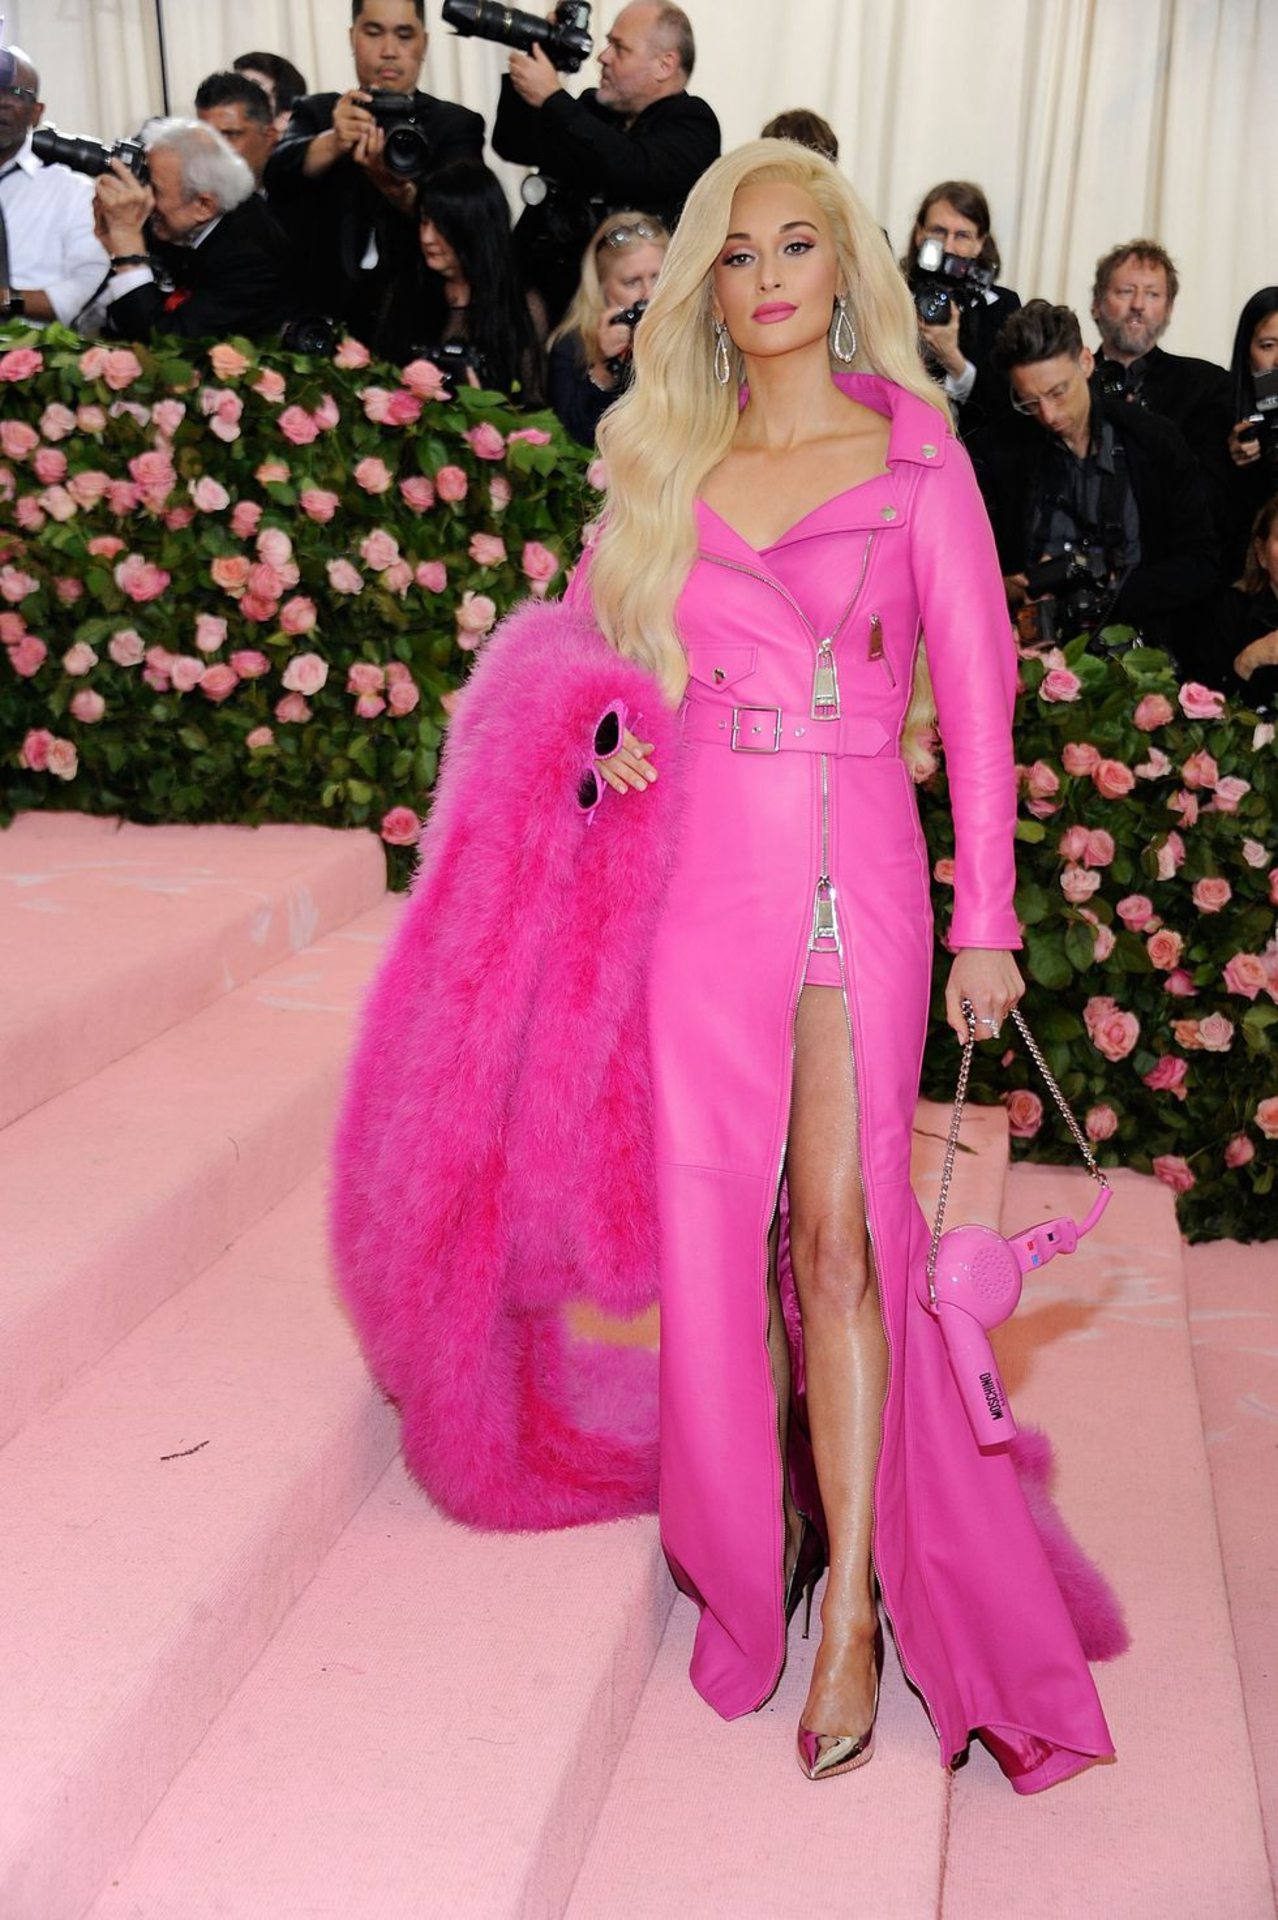 Of Wheres And Wears - kacey-musgraves-attends-the-2019-met-gala-celebrating-camp-news-photo-1141867102-1557233323